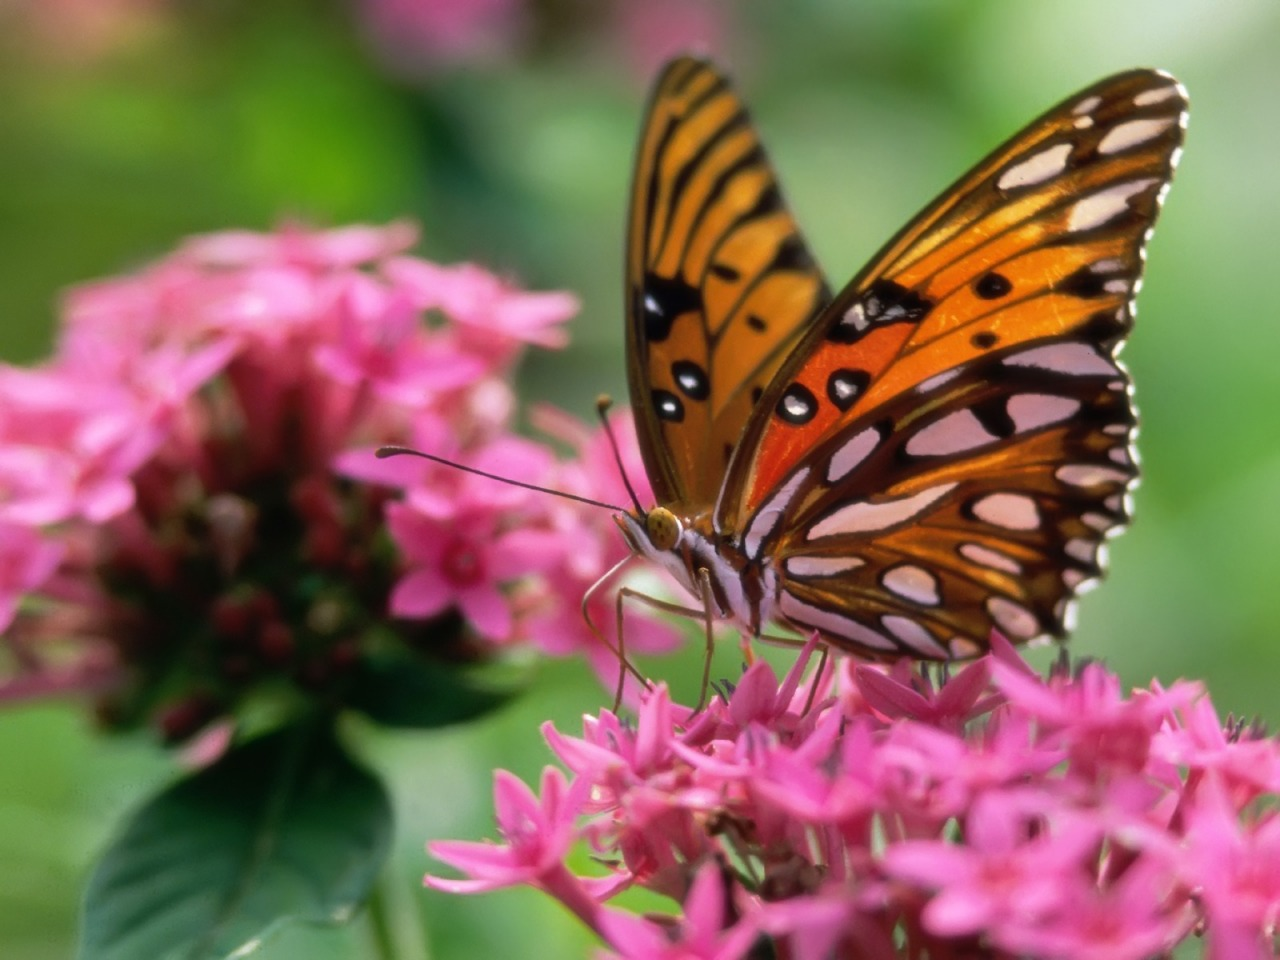 Butterflies bright wings against the muted green background and fuchsia pink flowers is a stunning combination.